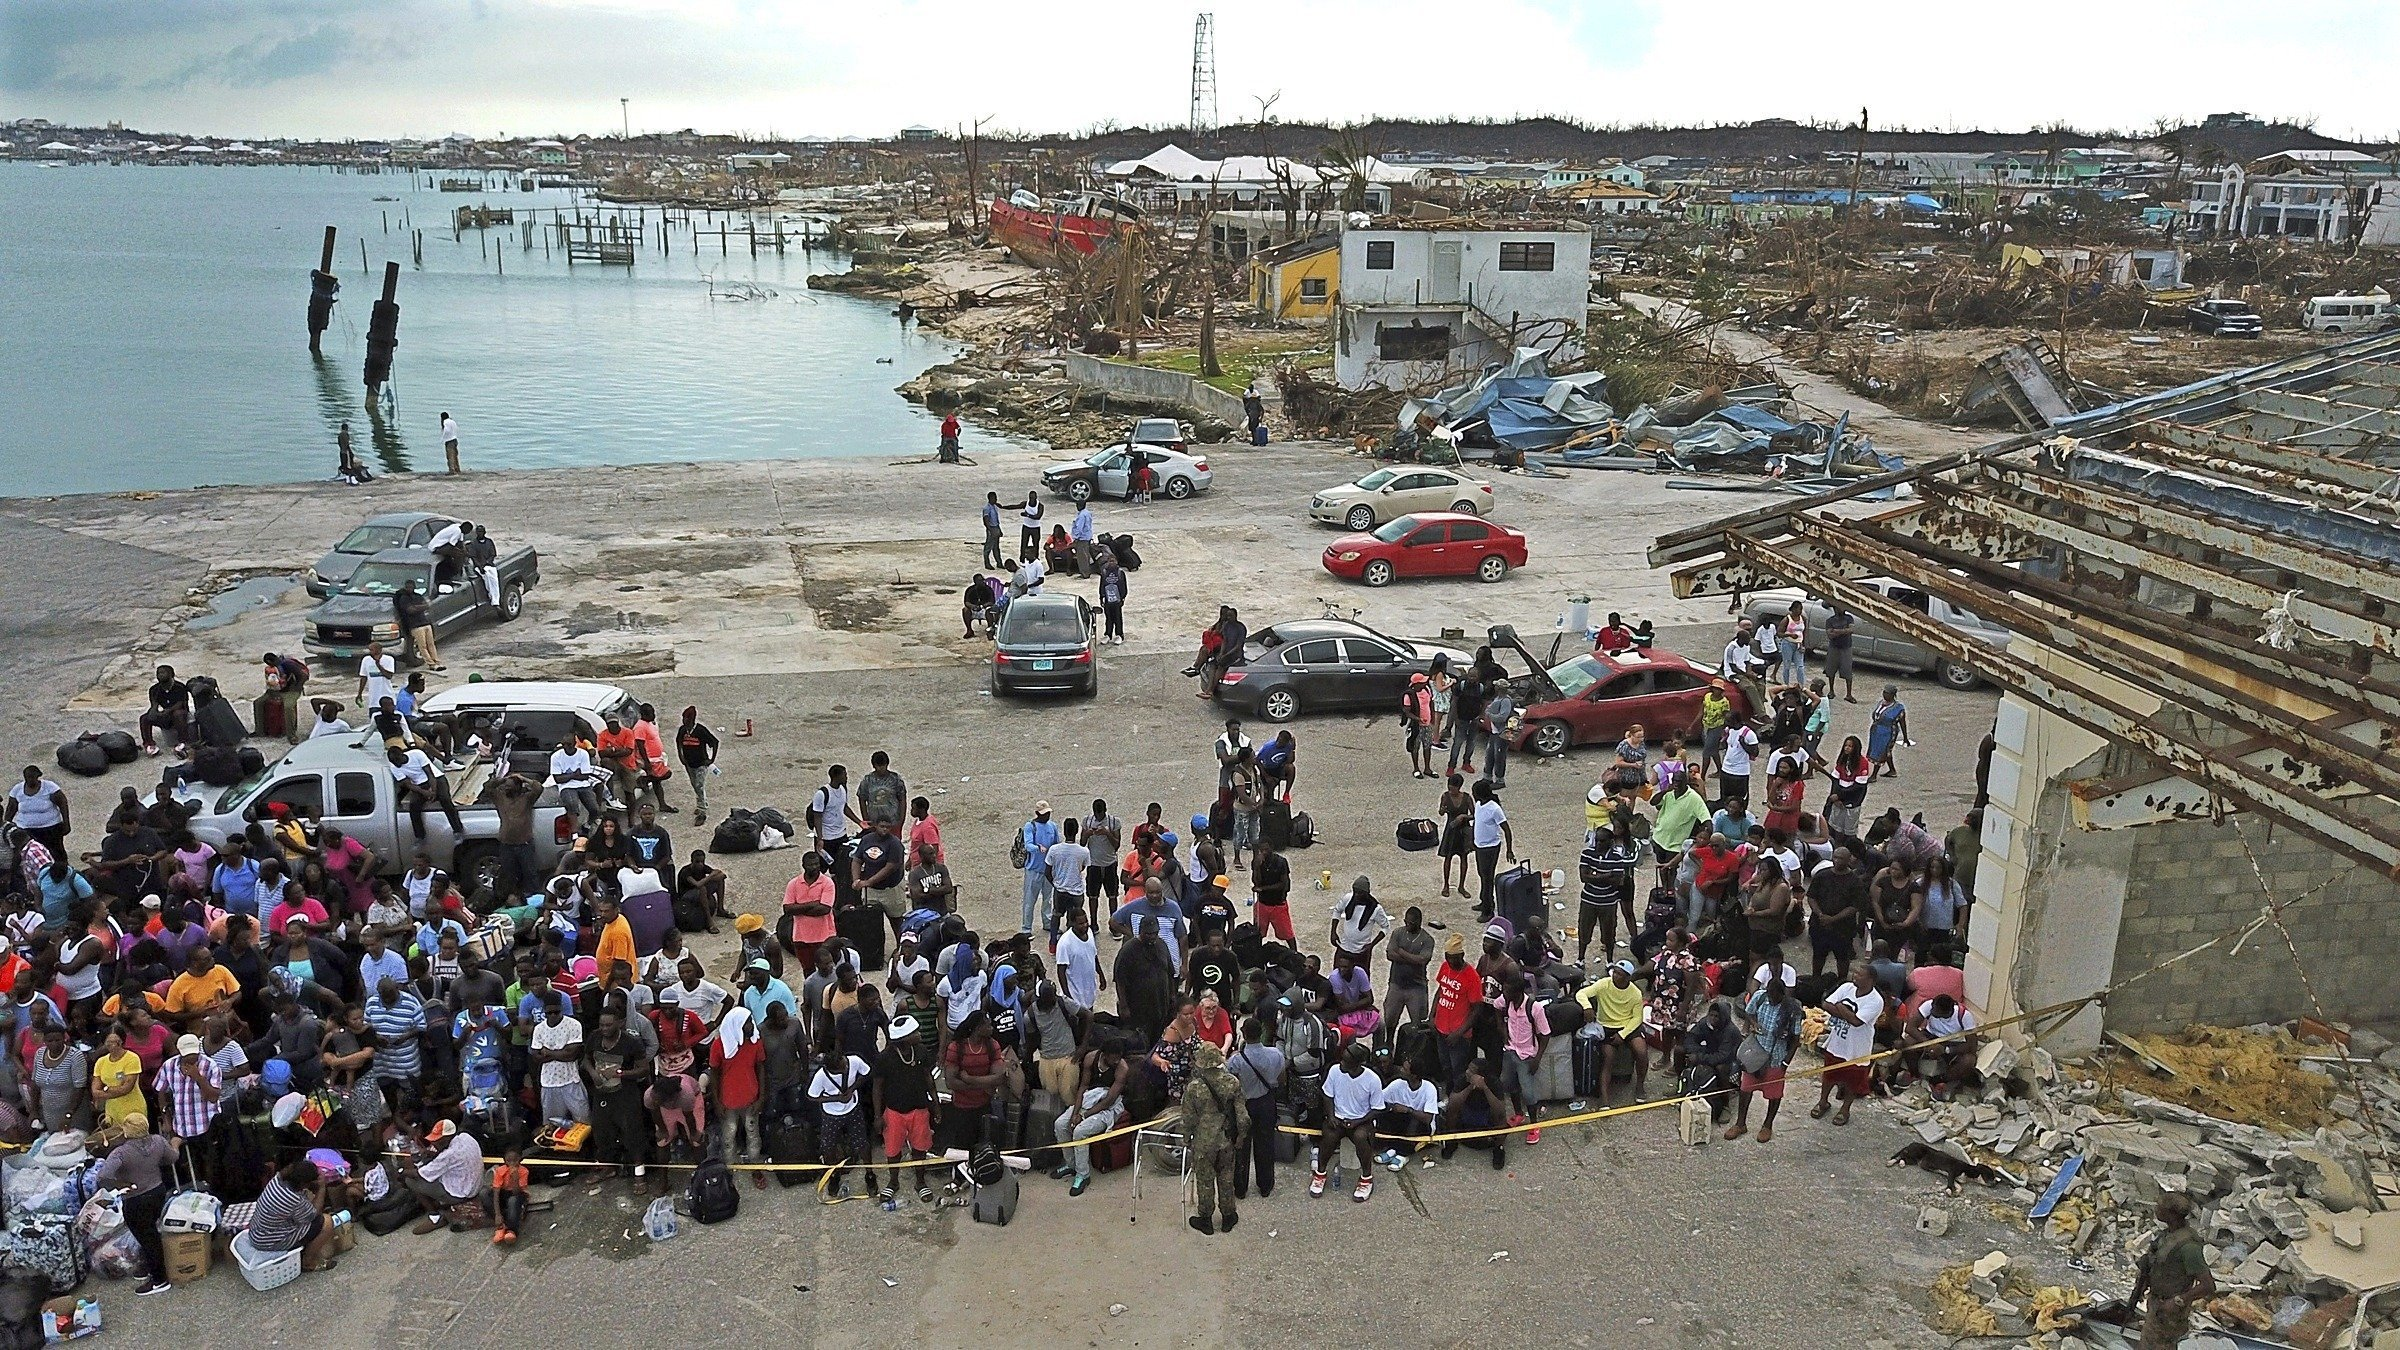 About 3,900 evacuees escaping Hurricane Dorian's devastation in the Bahamas have been processed through south Florida by air and sea, officials said. (Credit: Al Diaz/AP via CNN Wire)